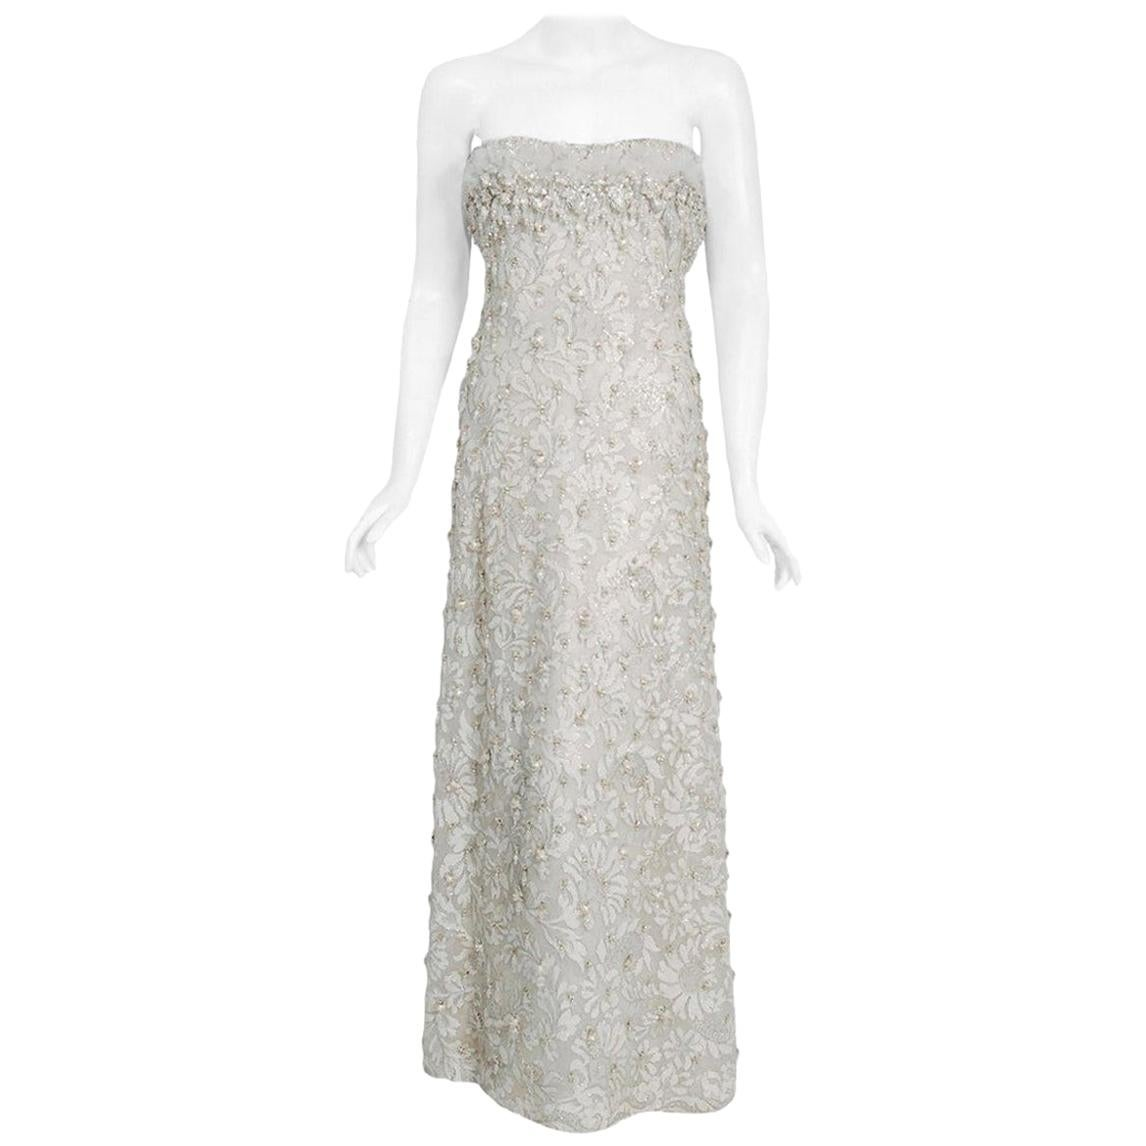 Vintage 1965 Pierre Balmain Couture Ivory Beaded Lace Strapless Bridal Gown